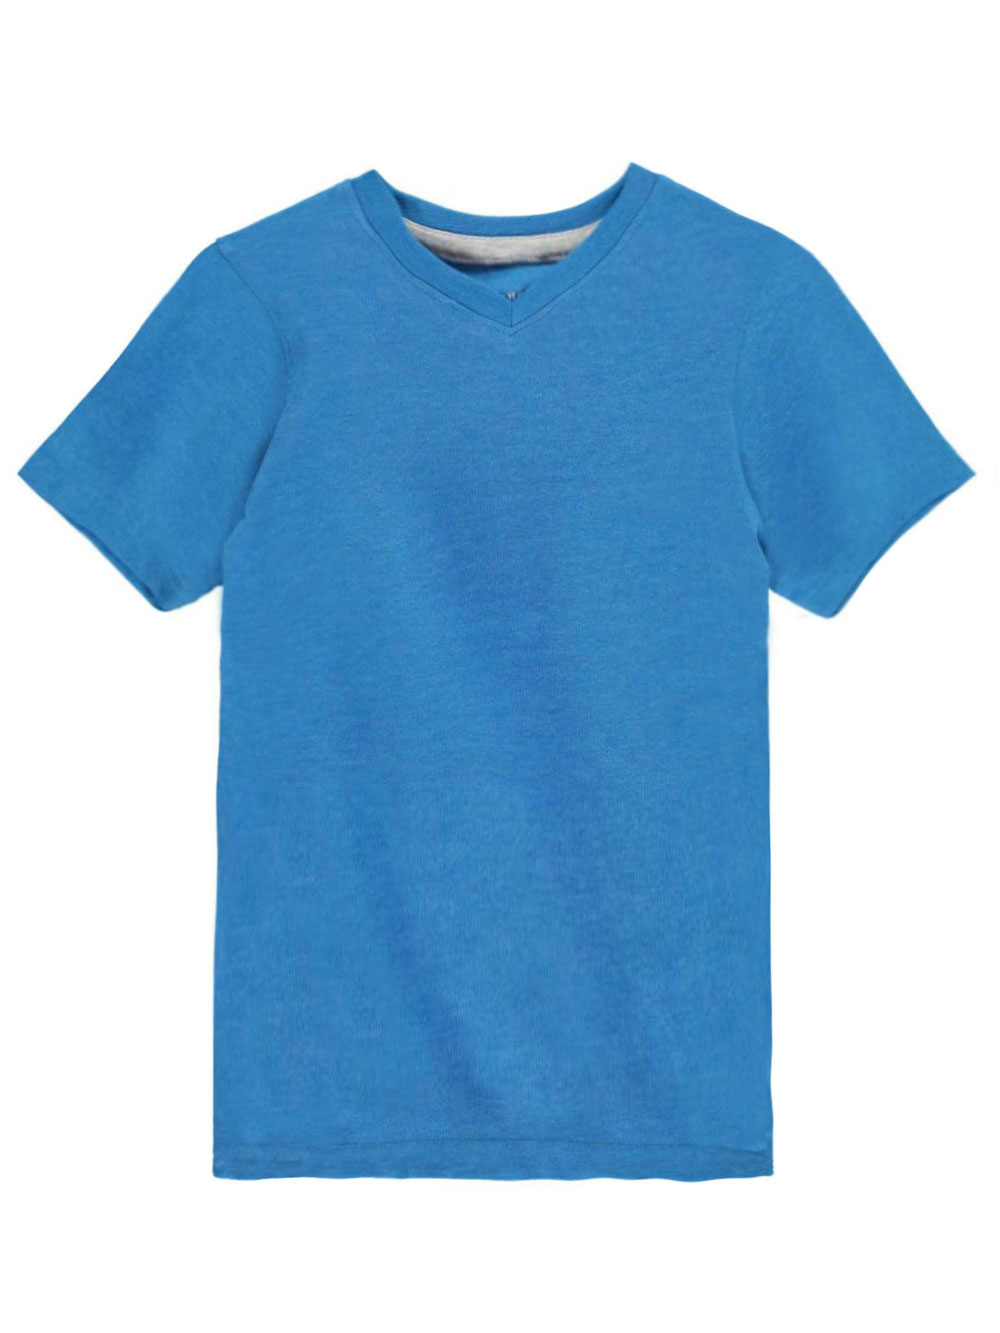 Image of French Toast Little Boys VNeck TShirt Sizes 4  7  bright blue 4